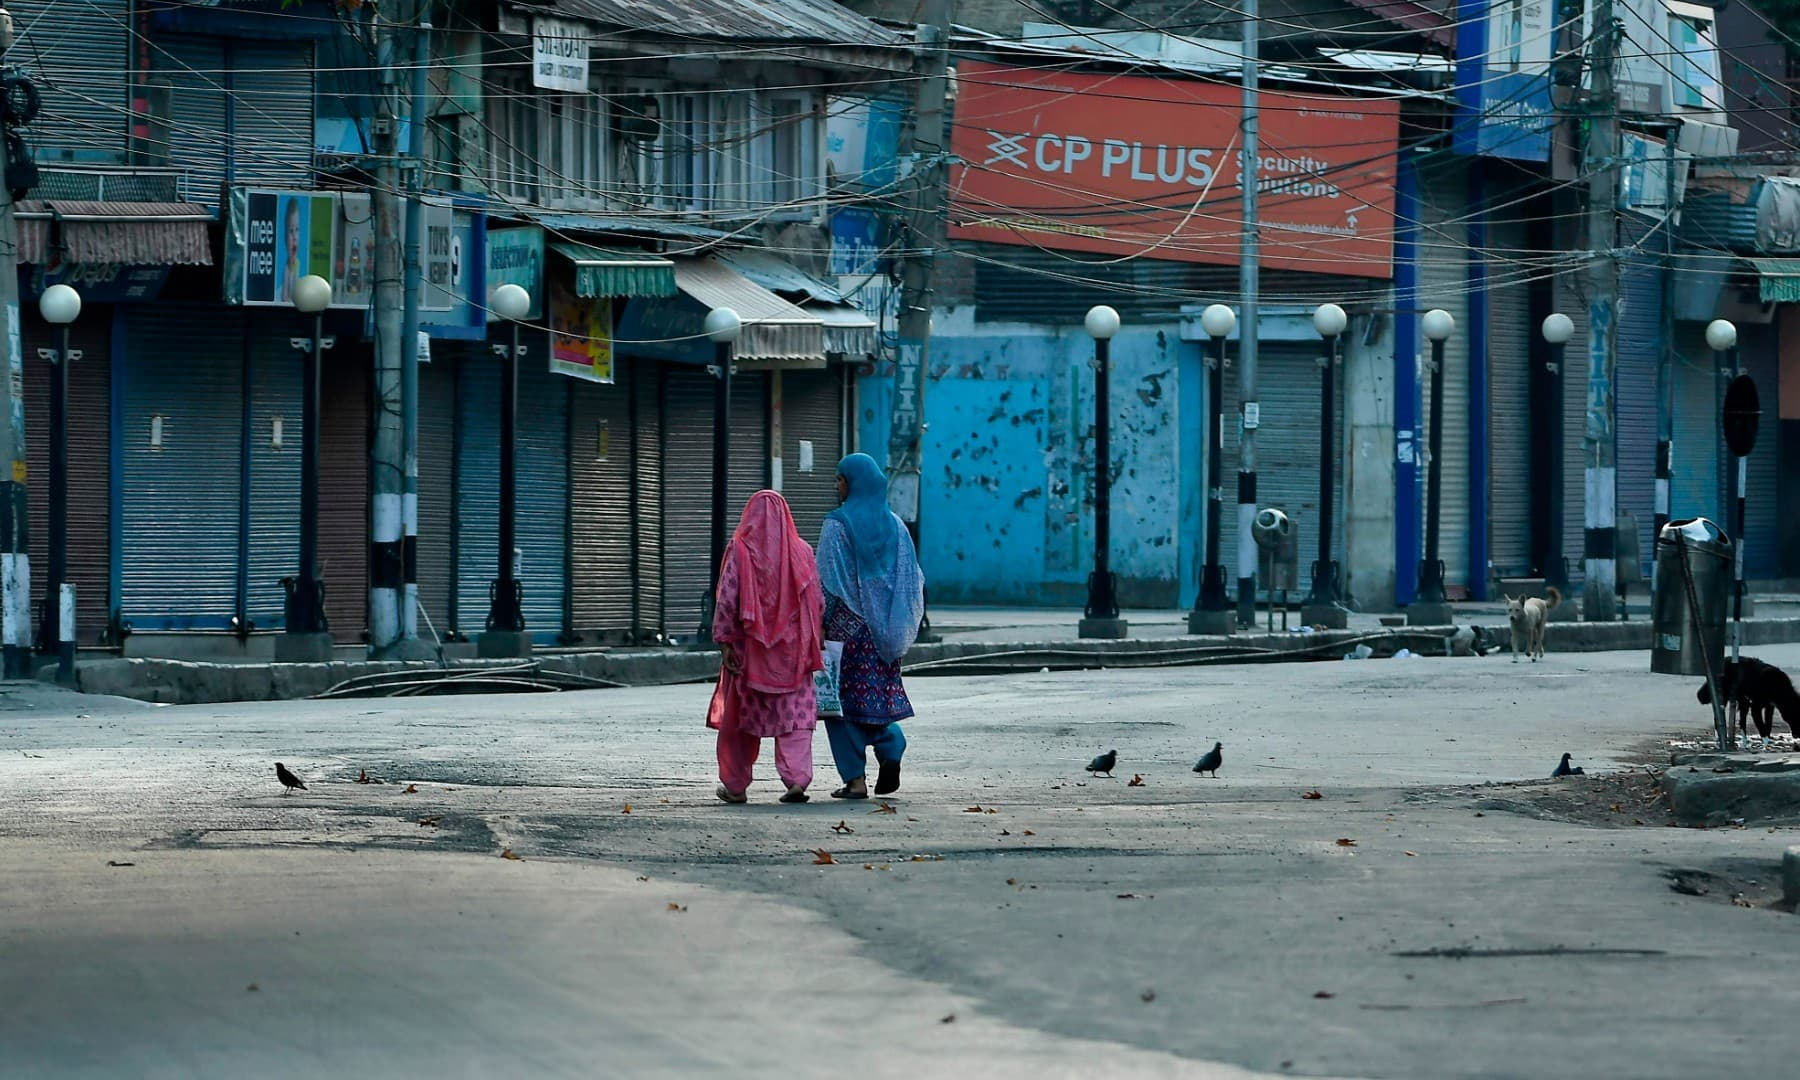 Women walk before a curfew in Srinagar on August 4, 2020. - A curfew has been imposed across Indian Kashmir just two days before the first anniversary of New Delhi's abolition of the restive region's semi-autonomy, officials said late August 3, citing intelligence reports of looming protests. (Photo by TAUSEEF MUSTAFA / AFP)